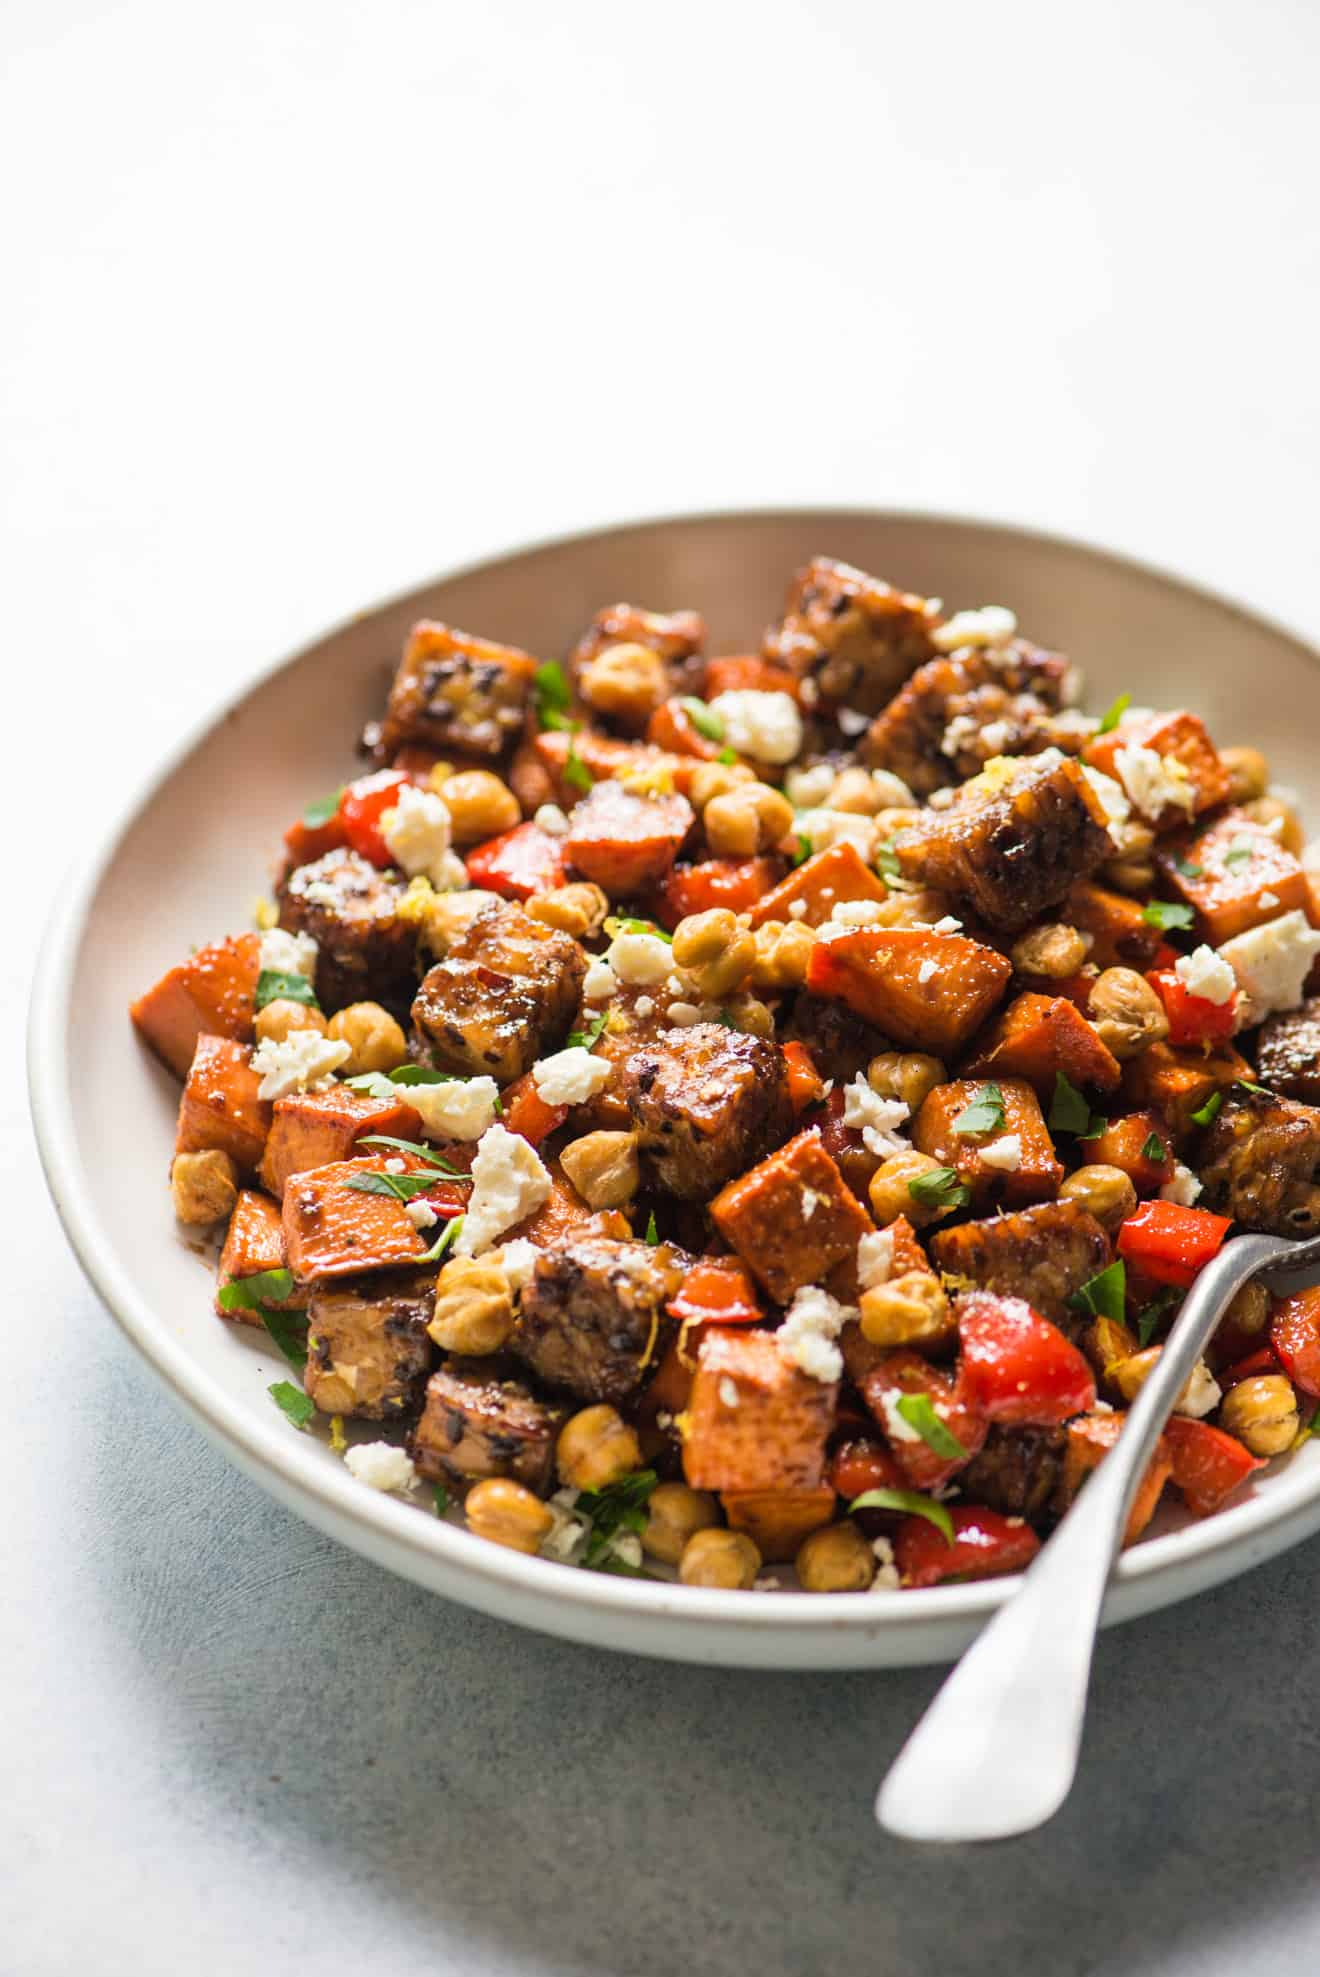 Roasted Tempeh with Tamarind Glaze, Sweet Potatoes and Roasted Chickpeas - an easy, healthy sheet pan dinner that's great for weeknights!